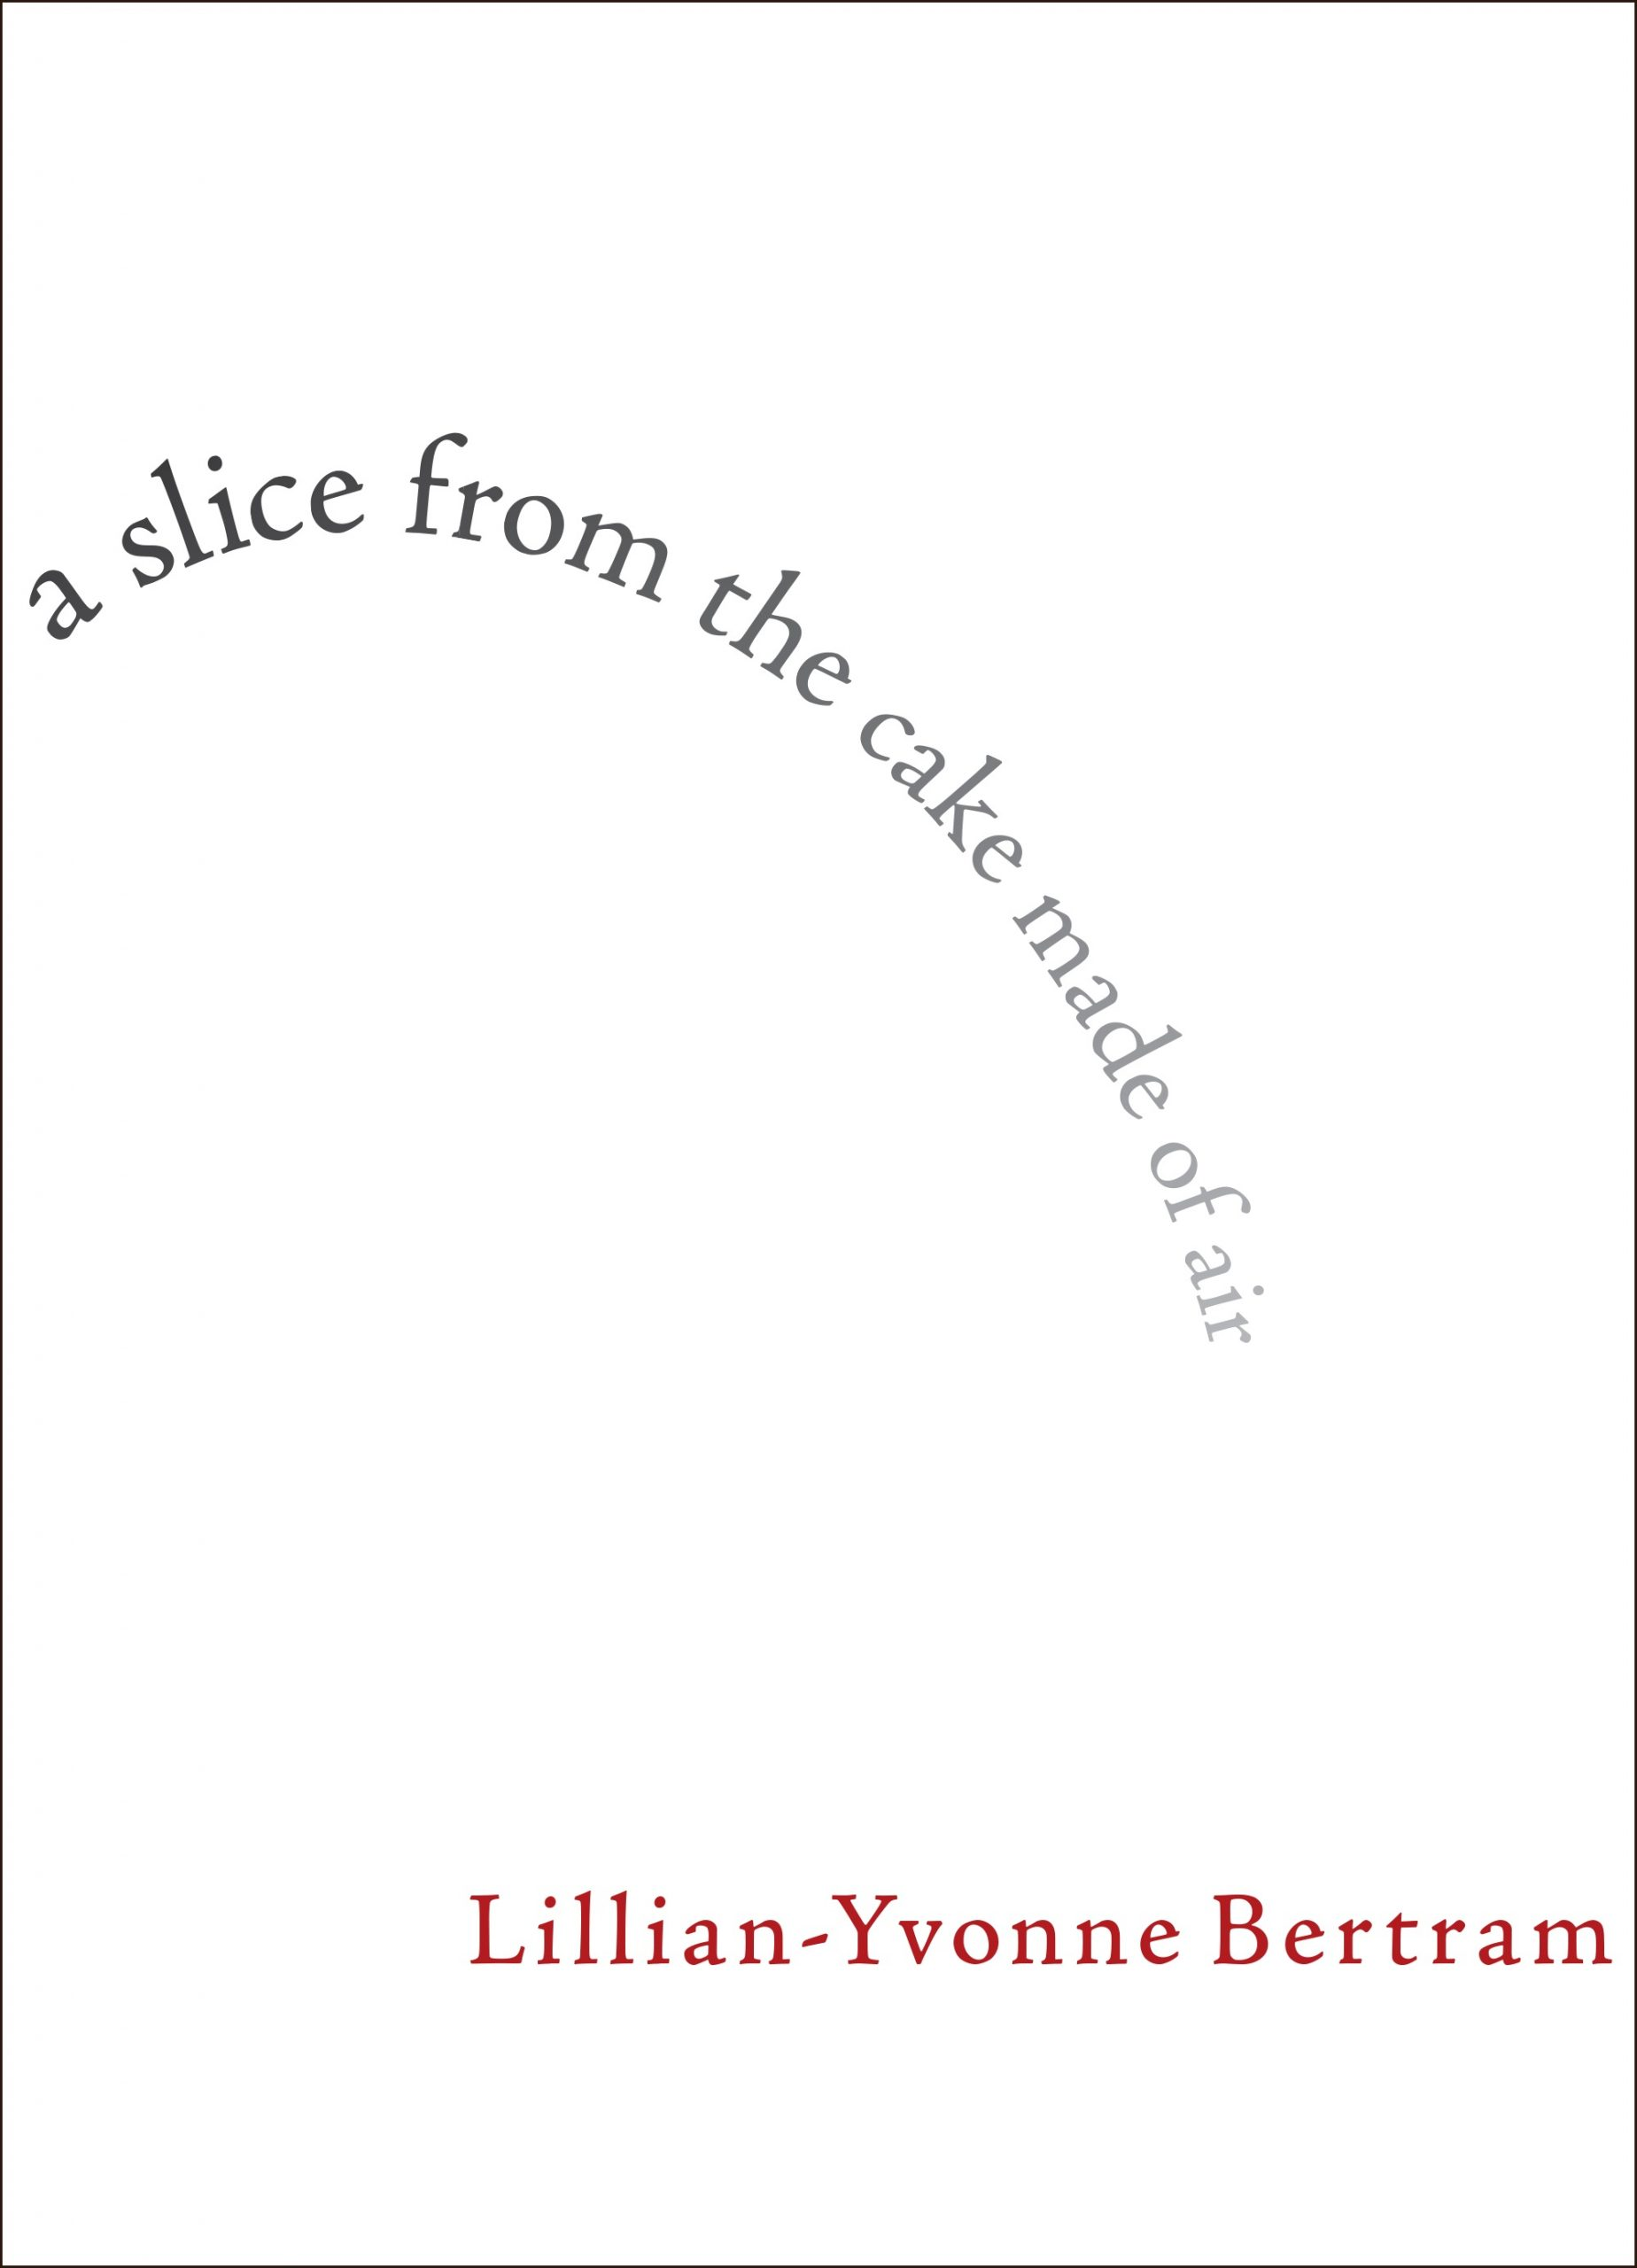 """Lowercase black text reads """"a slice from the cake made of air"""" is curved on a white background, red text at the bottom reads Lillian-Yvonne Bertram"""